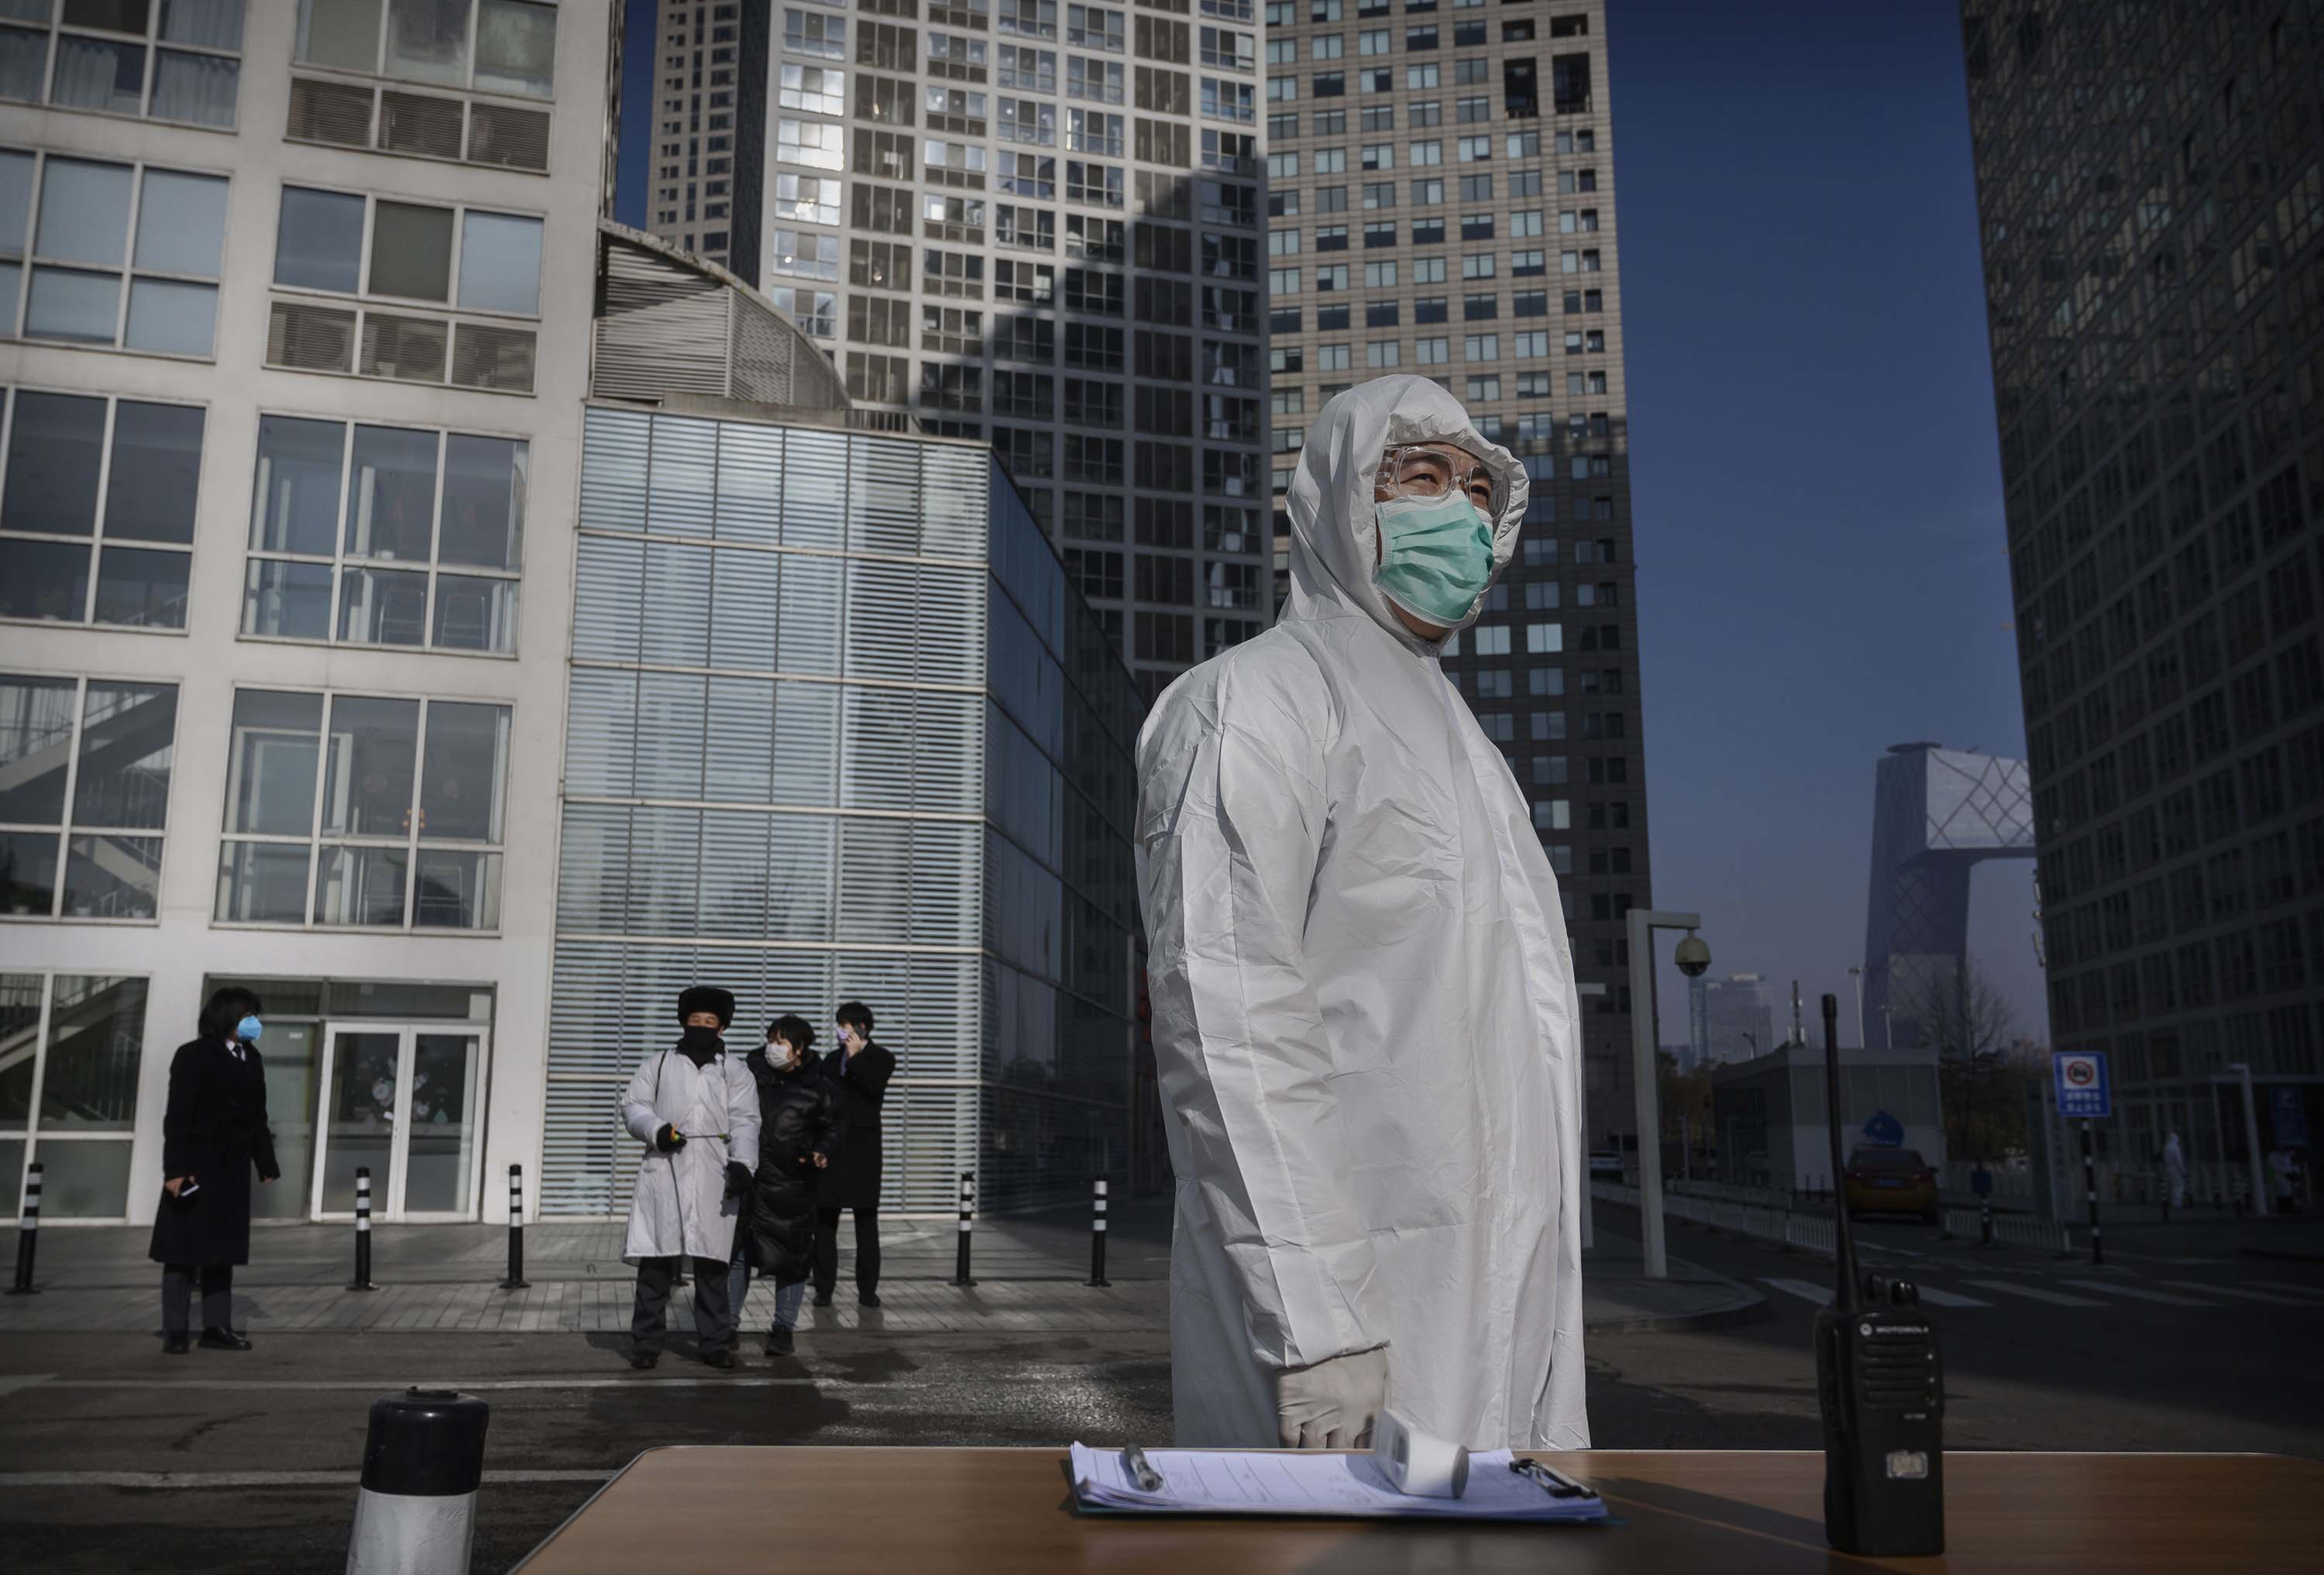 A man wears a protective suit outside an office building in Beijing on Monday, as he waits to screen people returning to work.